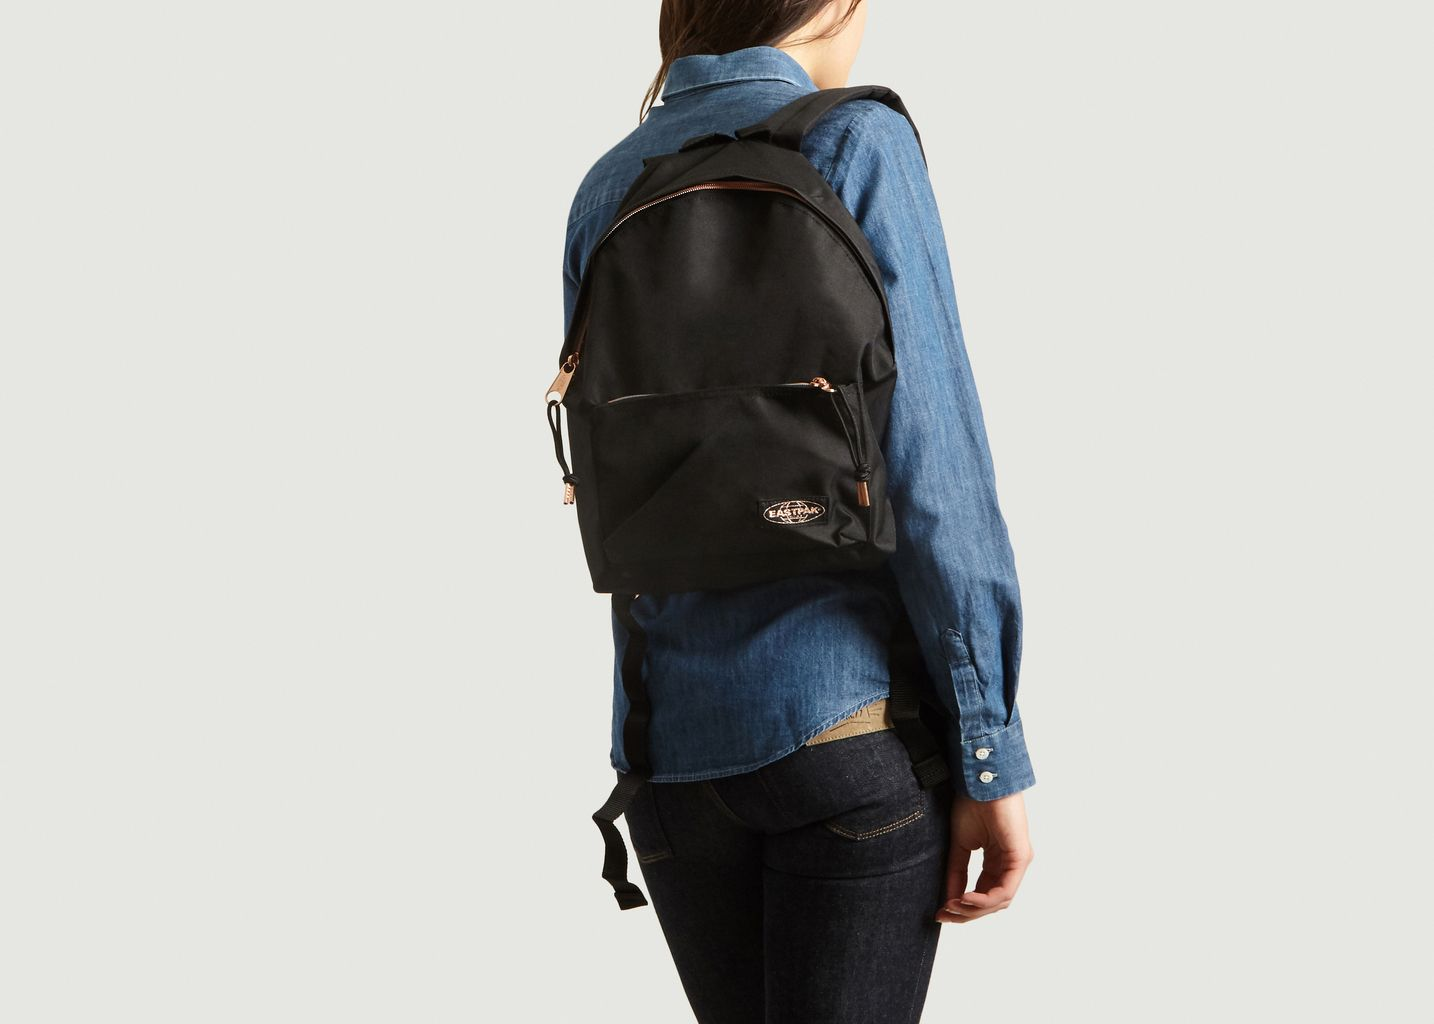 Noir À Eastpak Sac Dos L'exception Mini Orbit R0w7zqxT